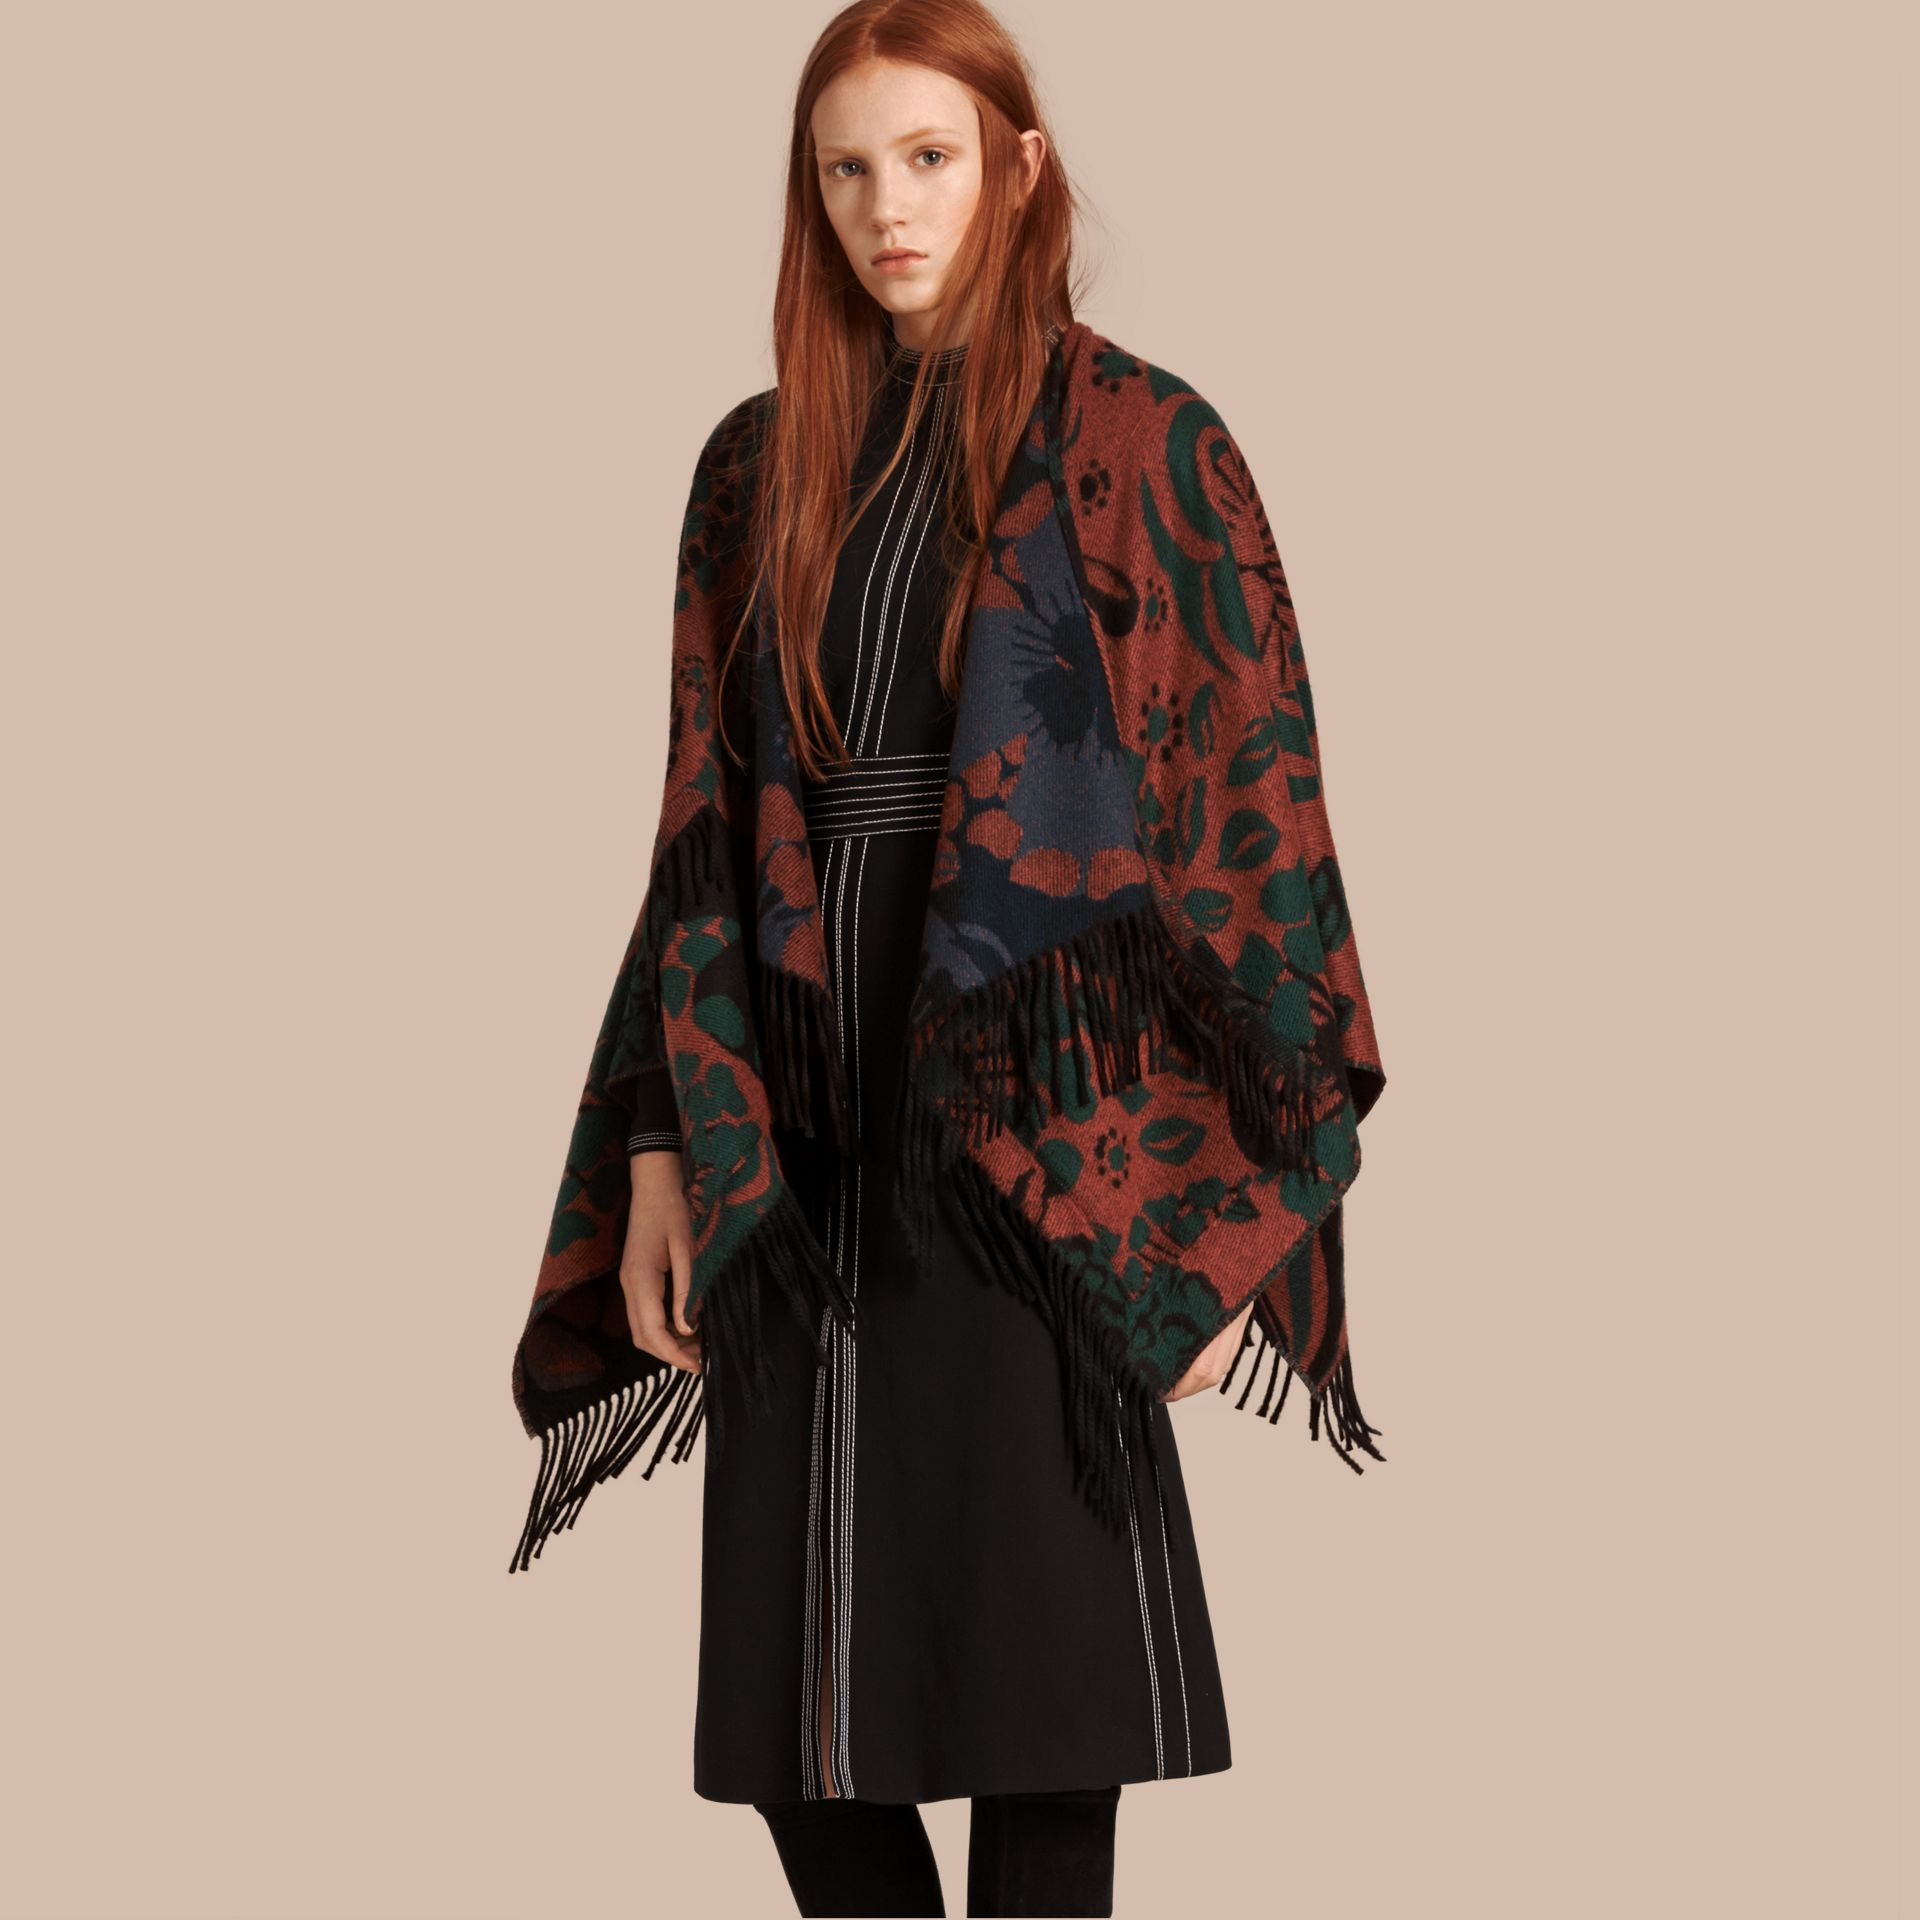 Burnt sienna Floral Jacquard Cashmere Poncho - gallery image 1